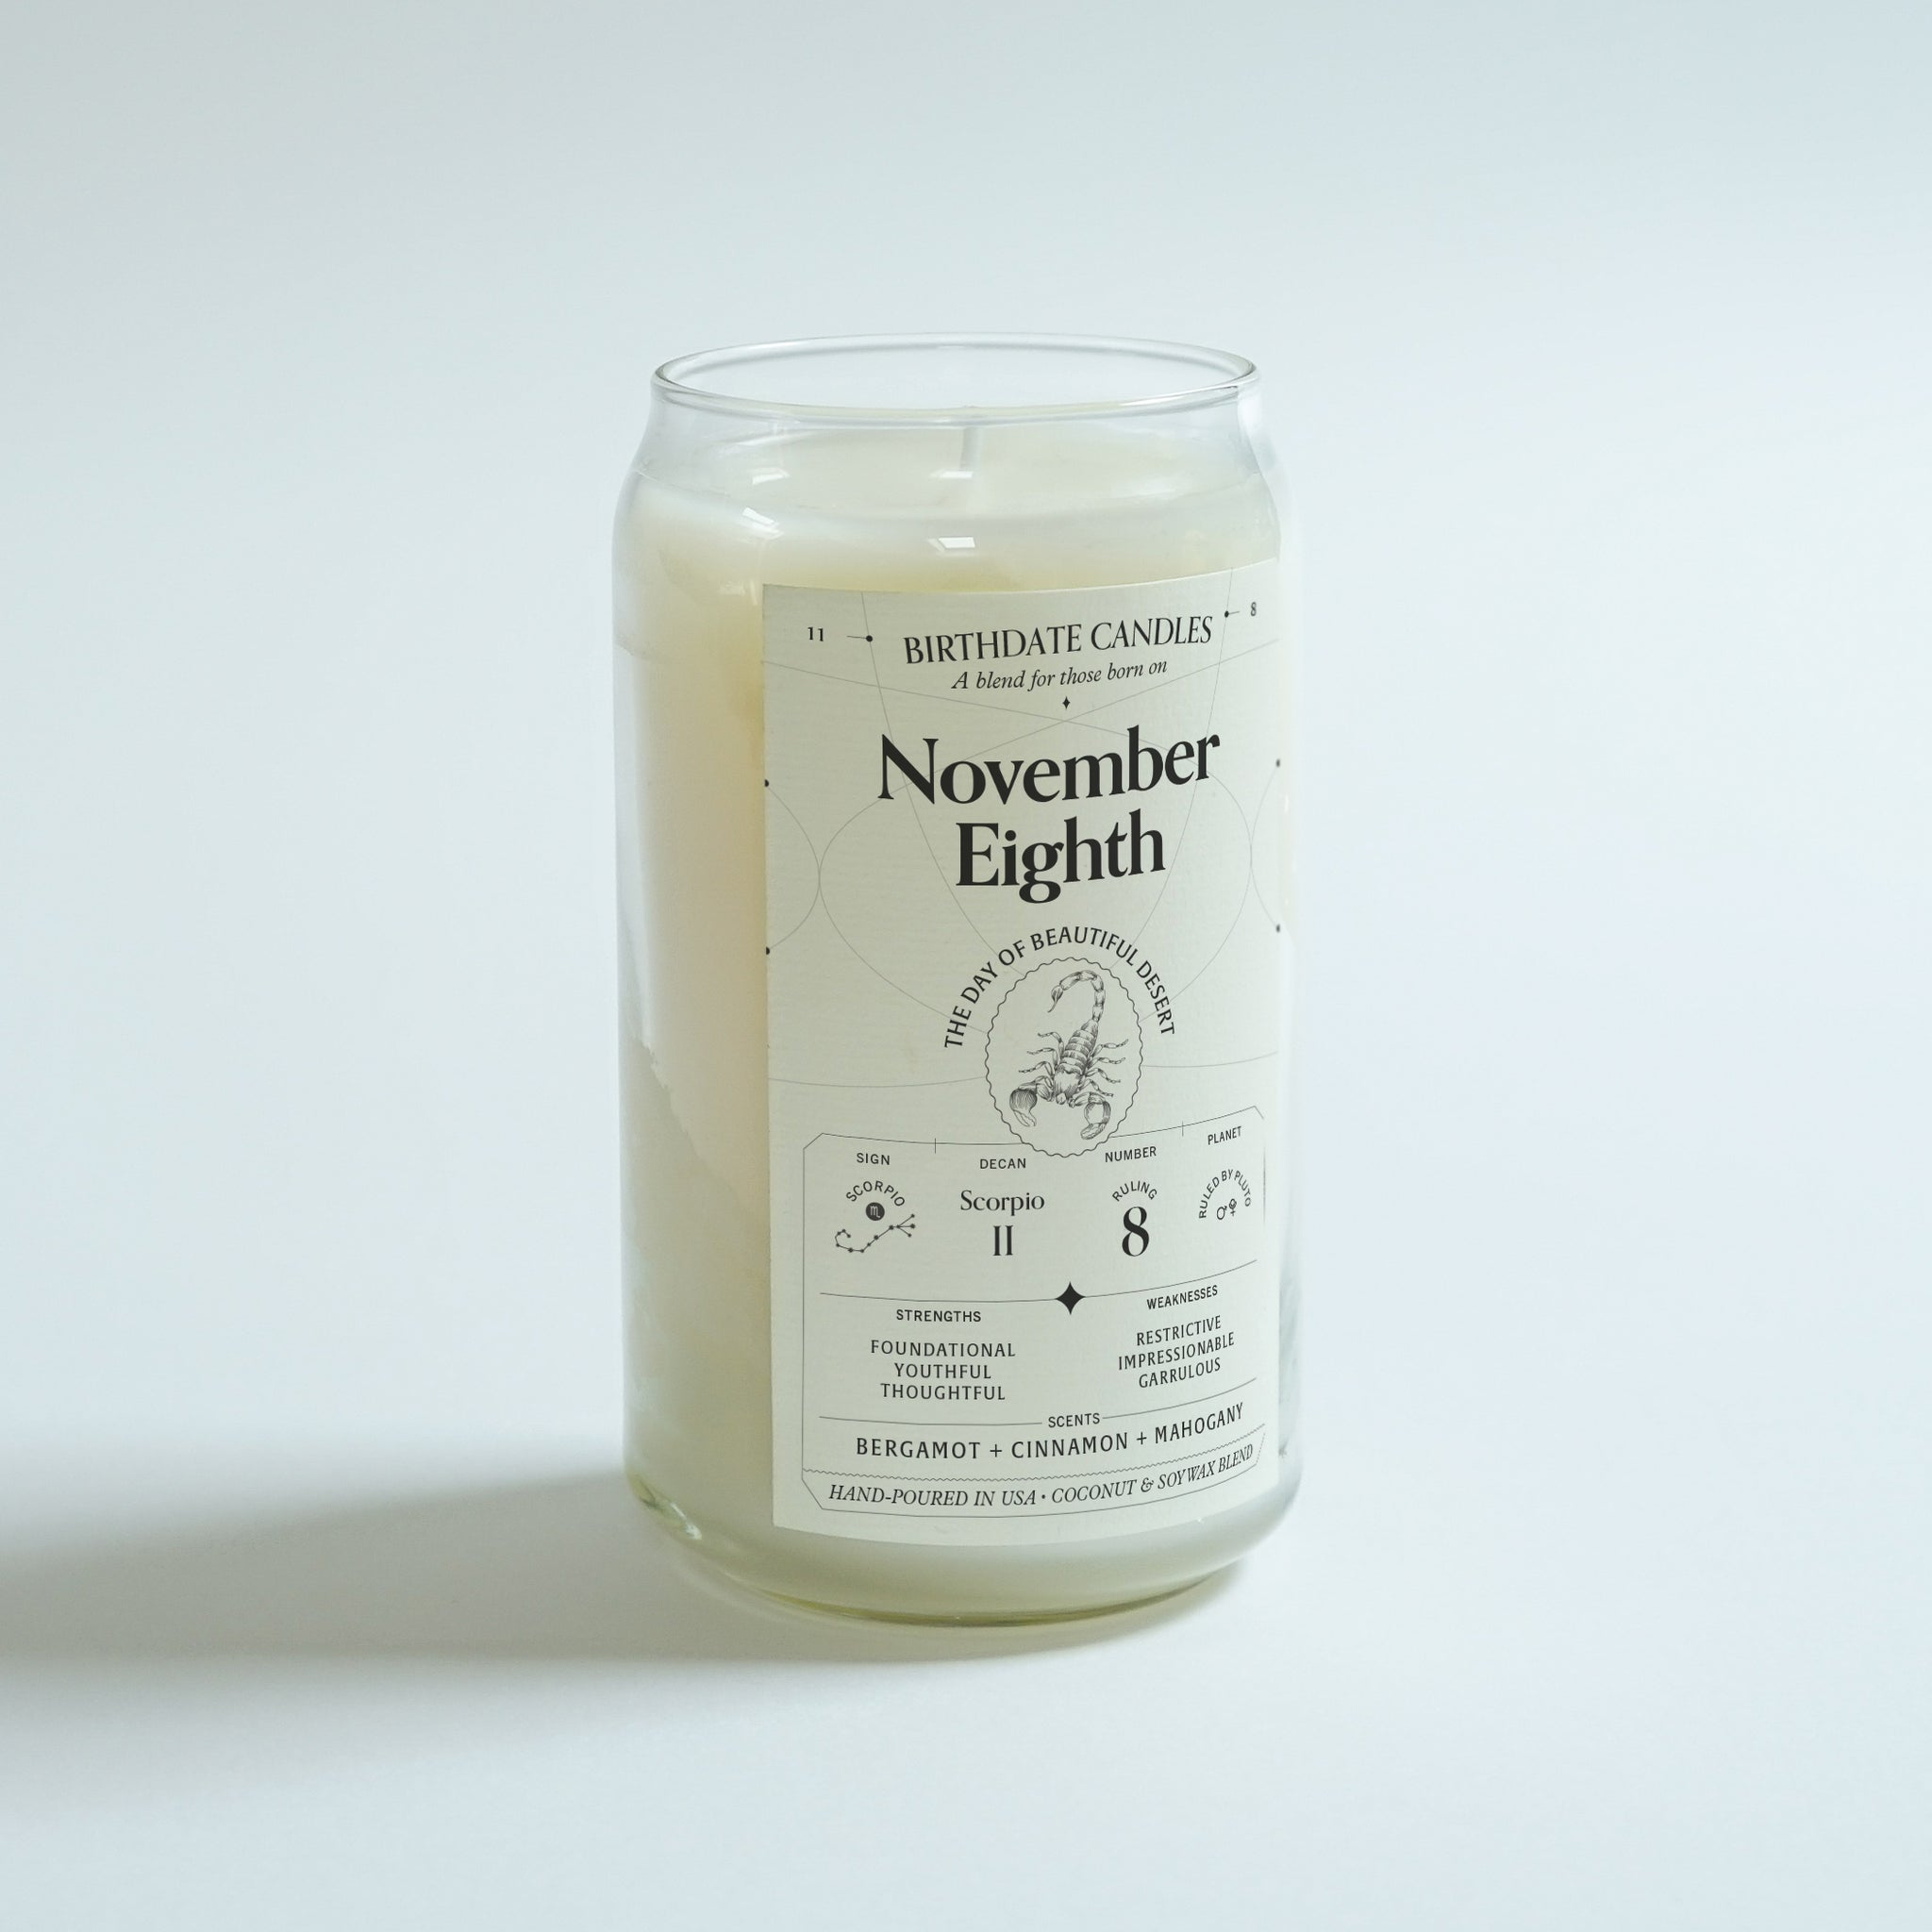 The November Eighth Birthday Candle